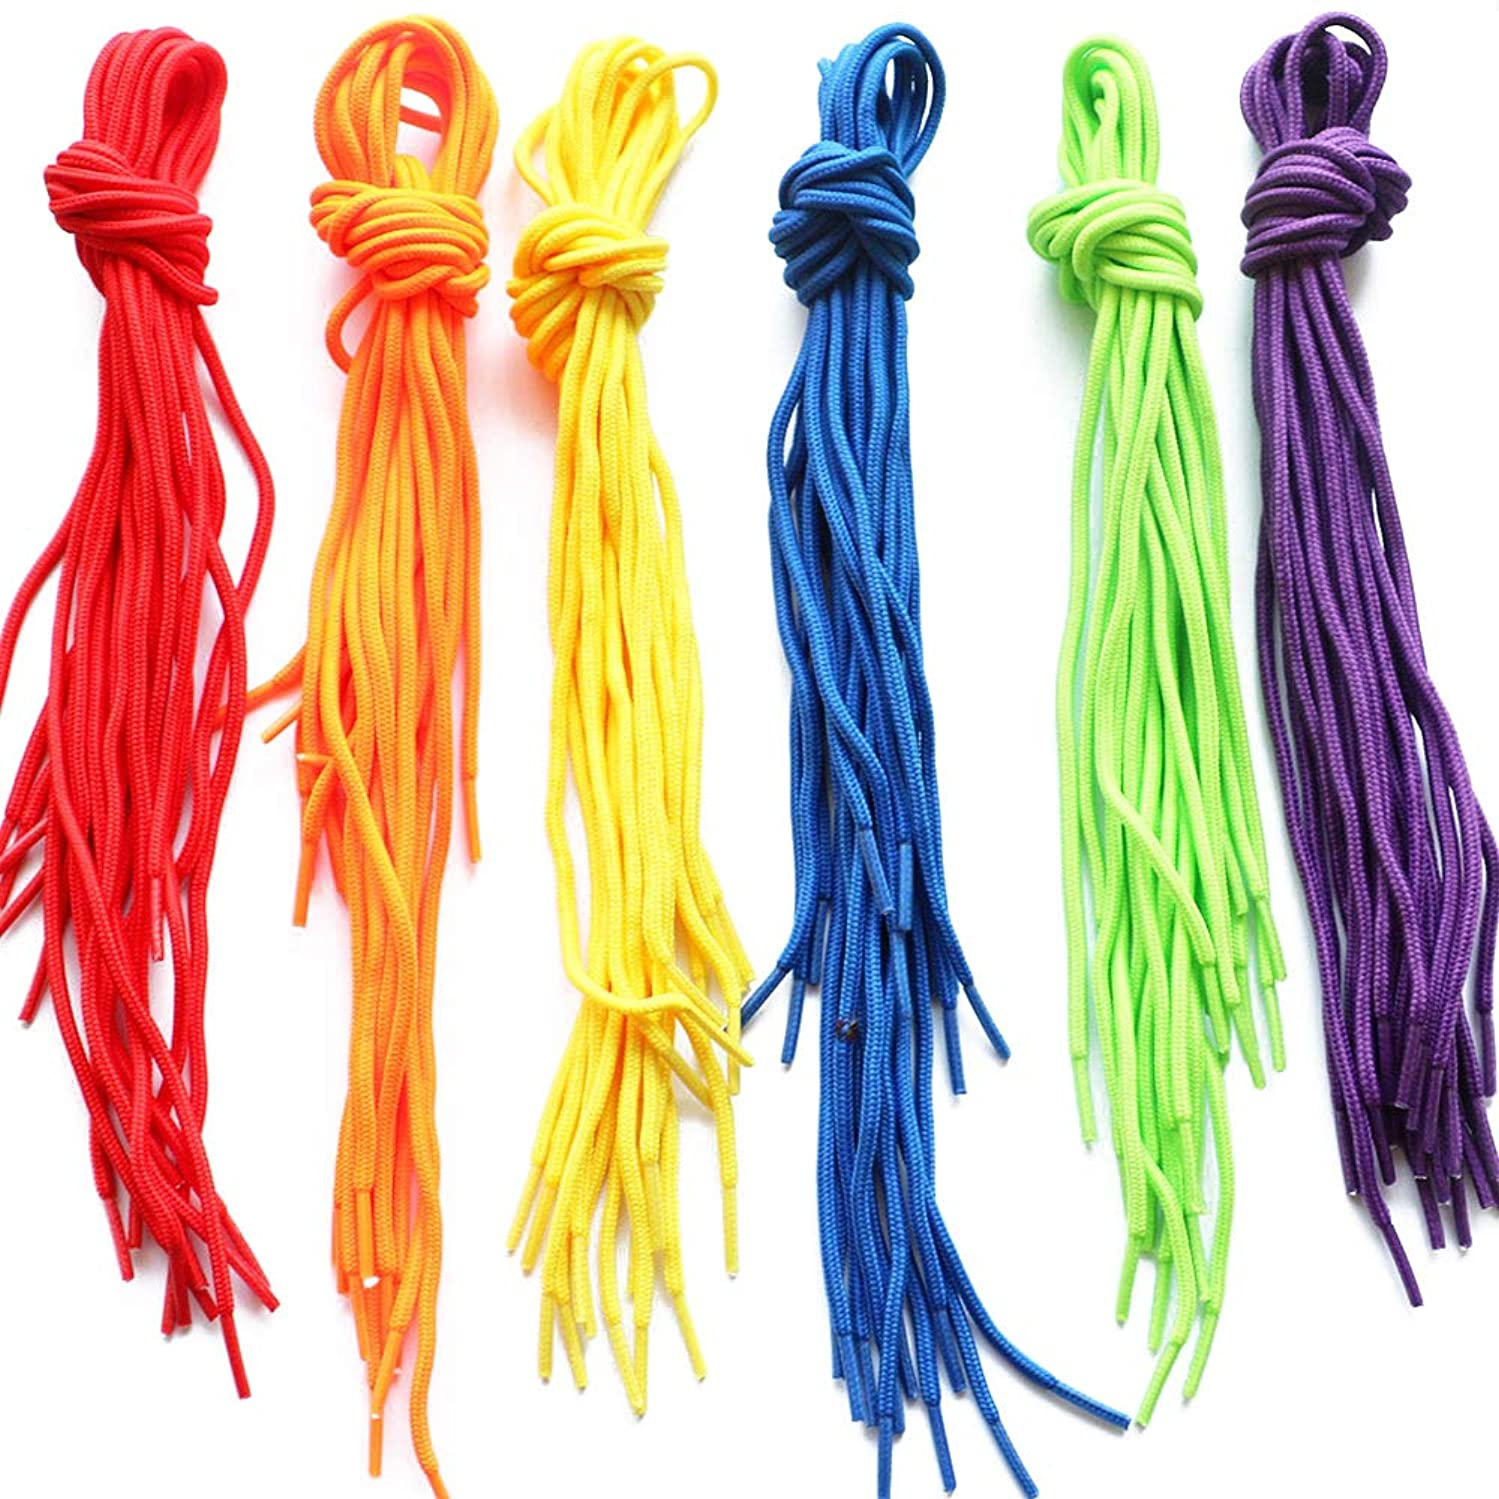 LGEGE 60 Pcs Colored Threading for Beading, Threading Lace Beading Cords Beading String(6 Colors)